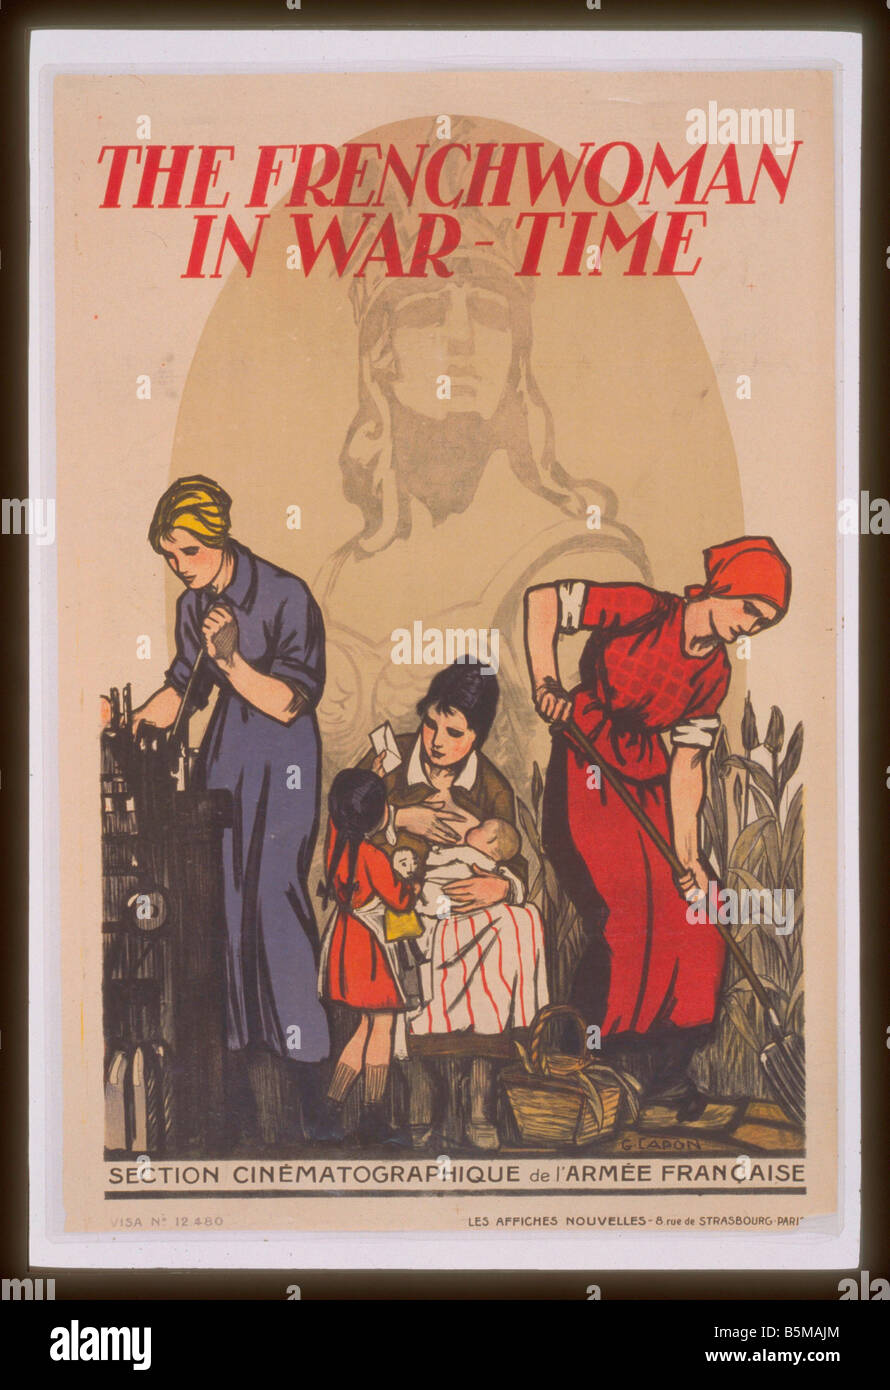 2 G55 W2 1917 22 WW I French Women in Wartime Poster History World War I Wartime Economy The Frenchwoman in war - Stock Image